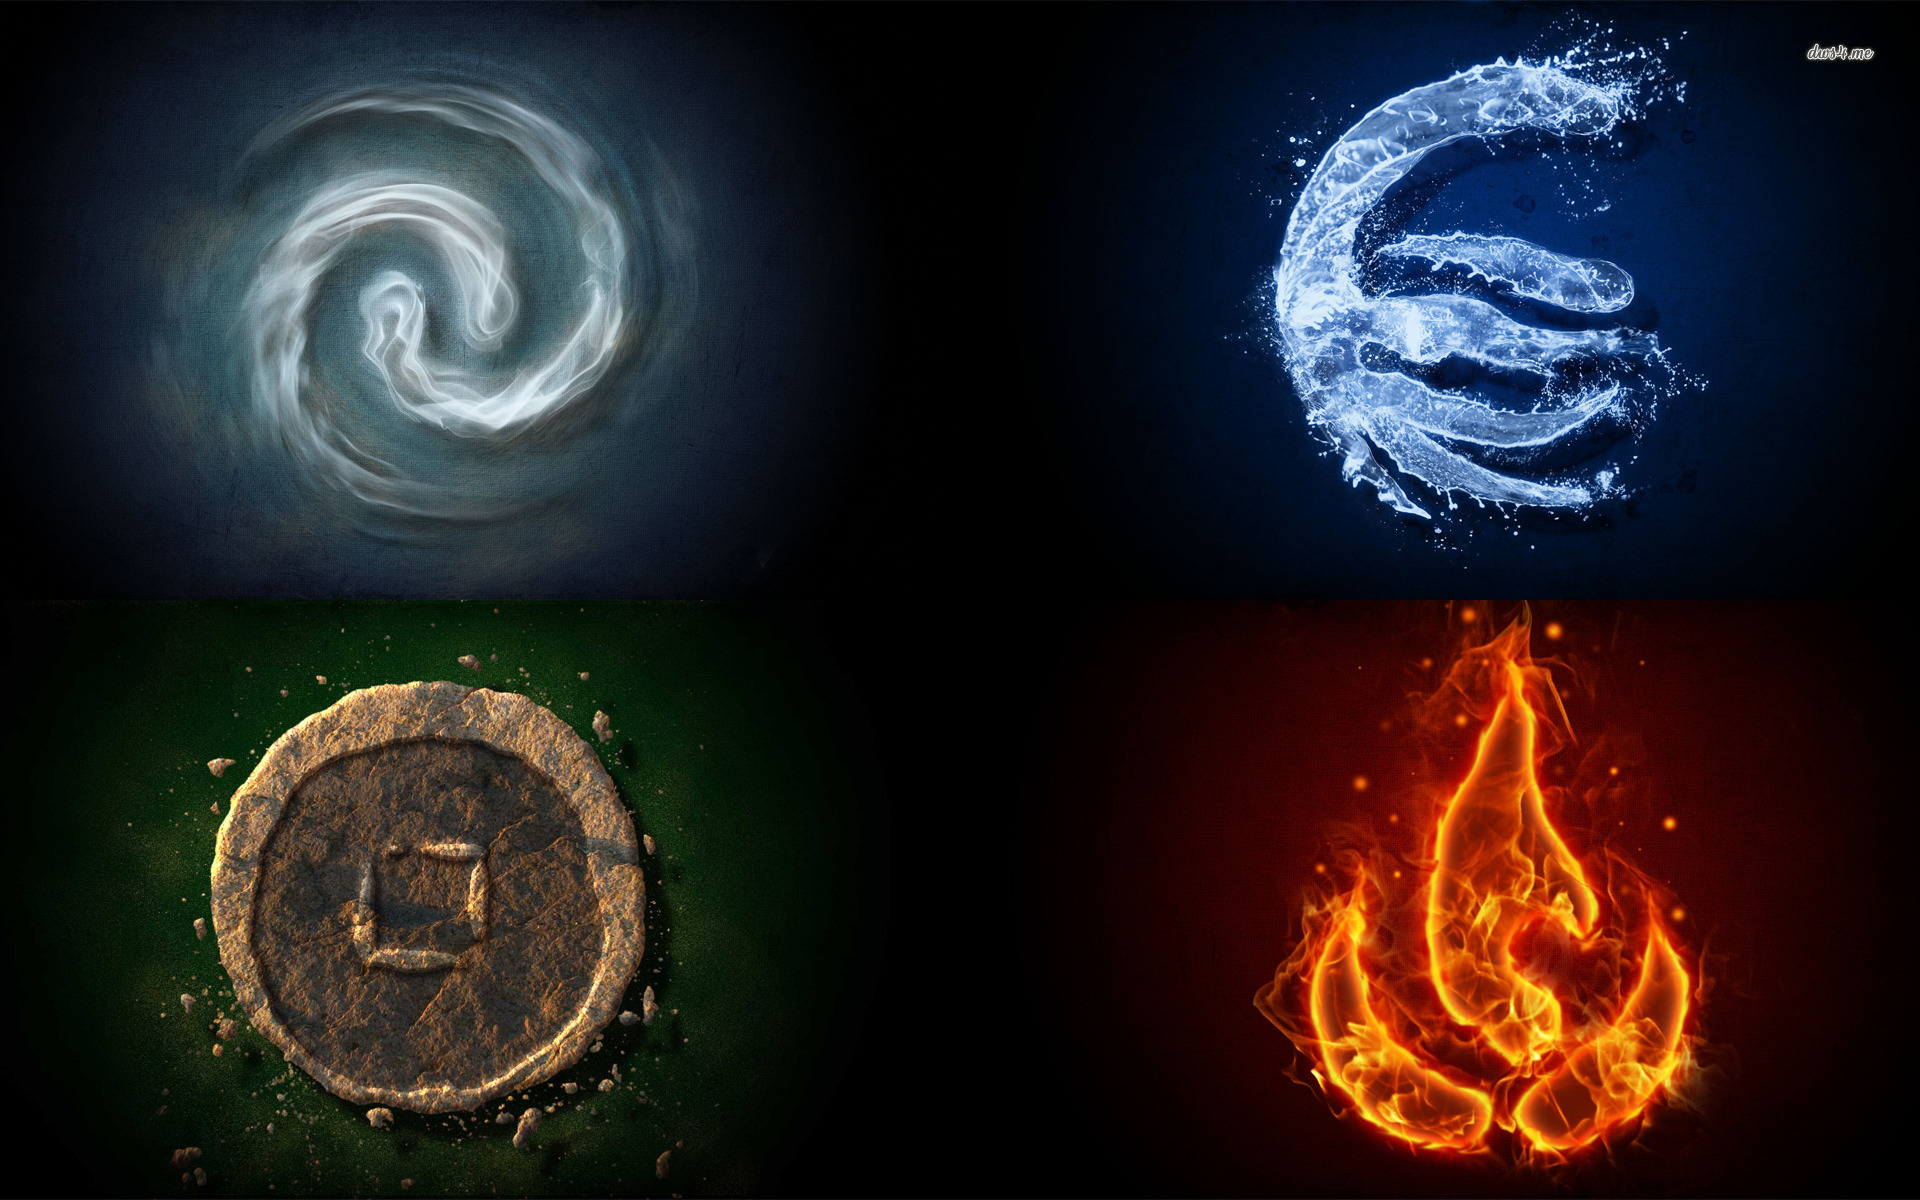 Avatar The Last Airbender wallpaper   Anime wallpapers   3655 1920x1200